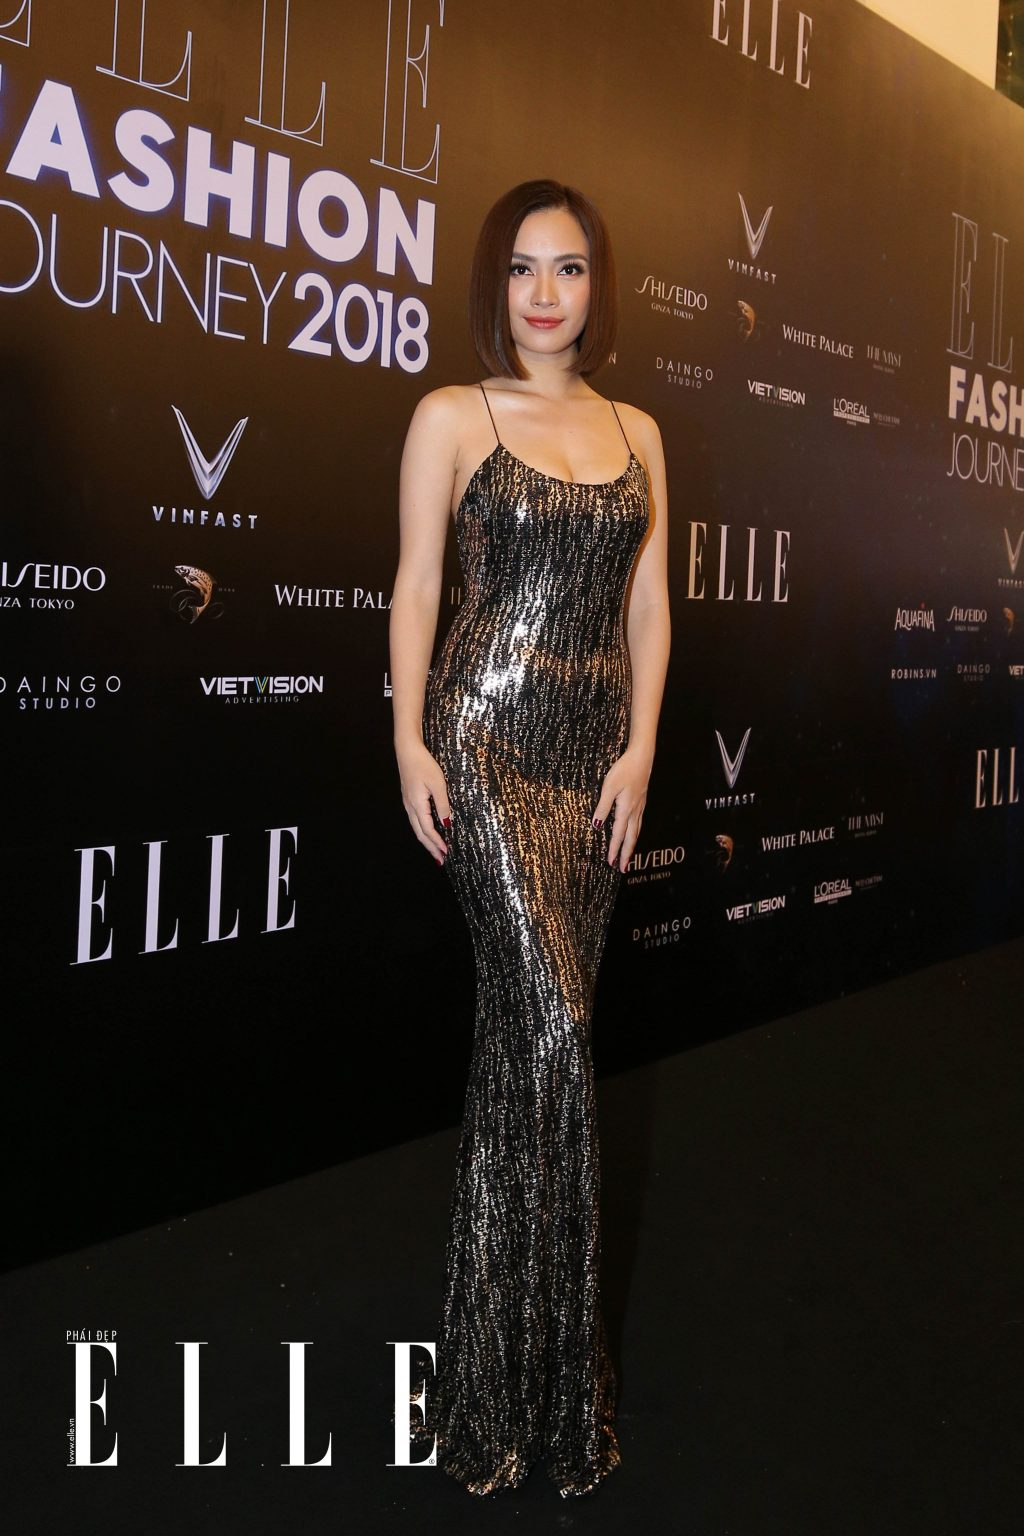 ELLE Fashion Journey tham do 11